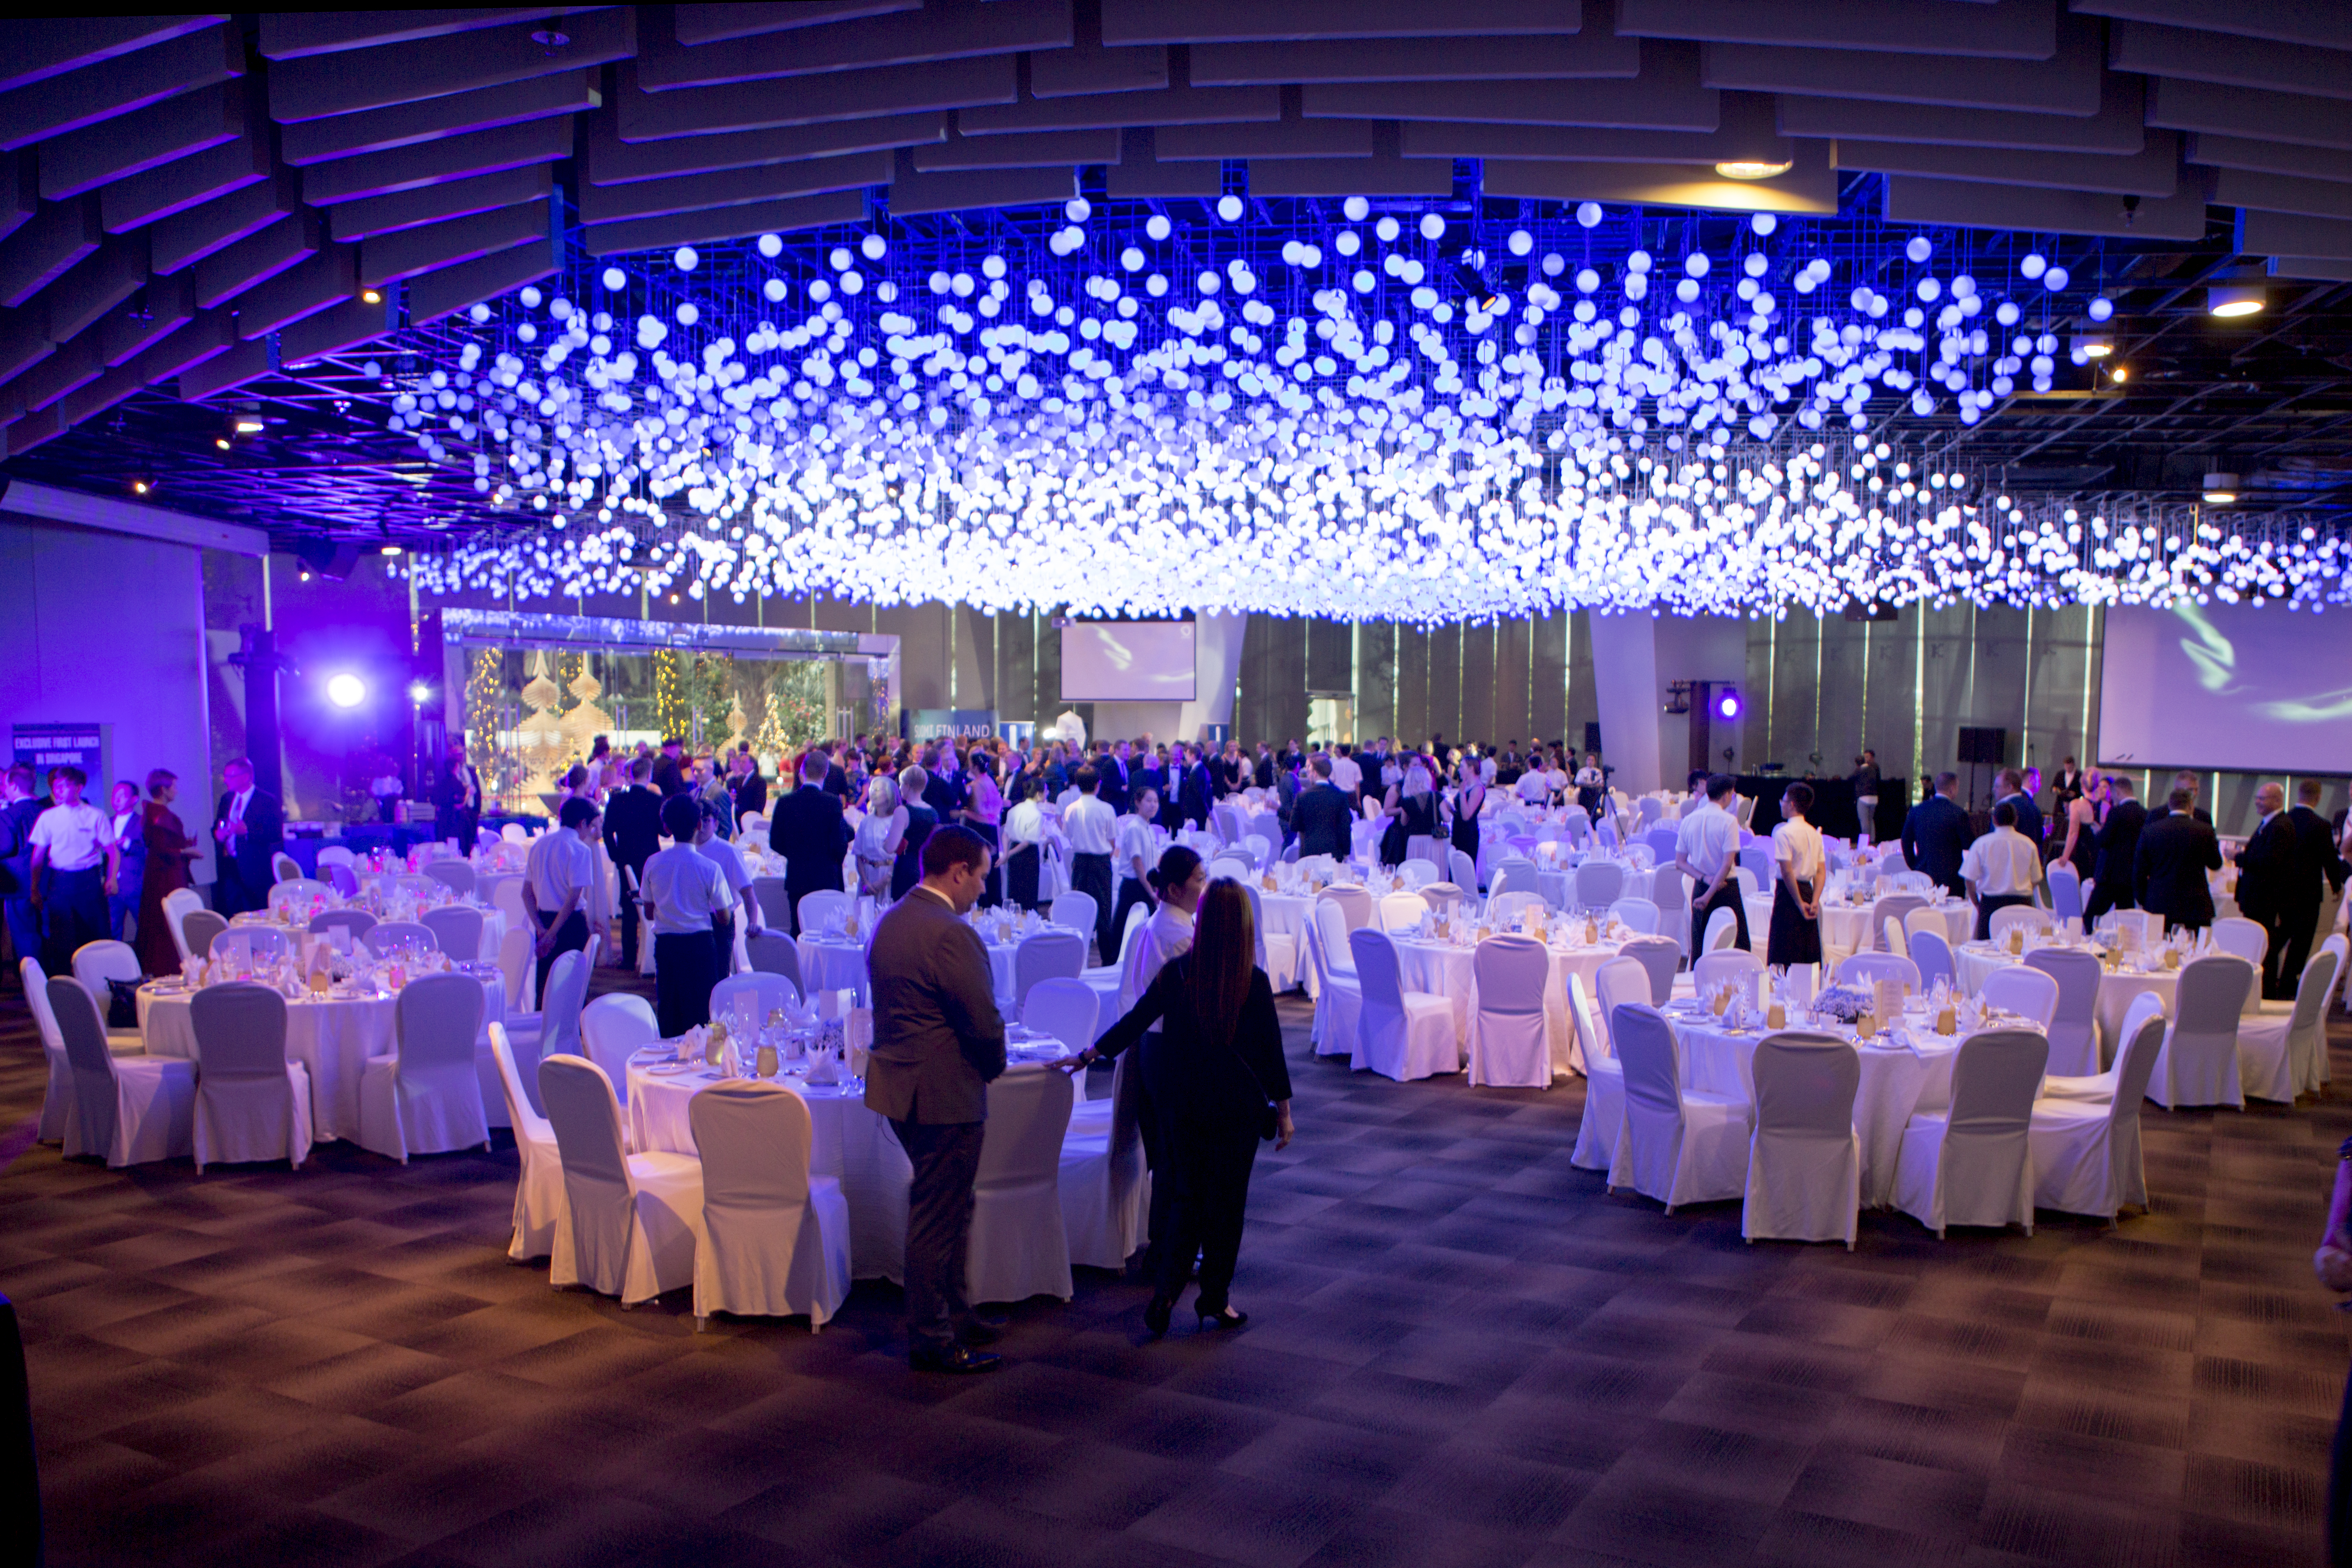 Blue And White Were The Colours Of The Evening, When Close To 350 Guests  From The Finnish Community In Singapore Gathered At The Flower Dome At  Gardens By ...